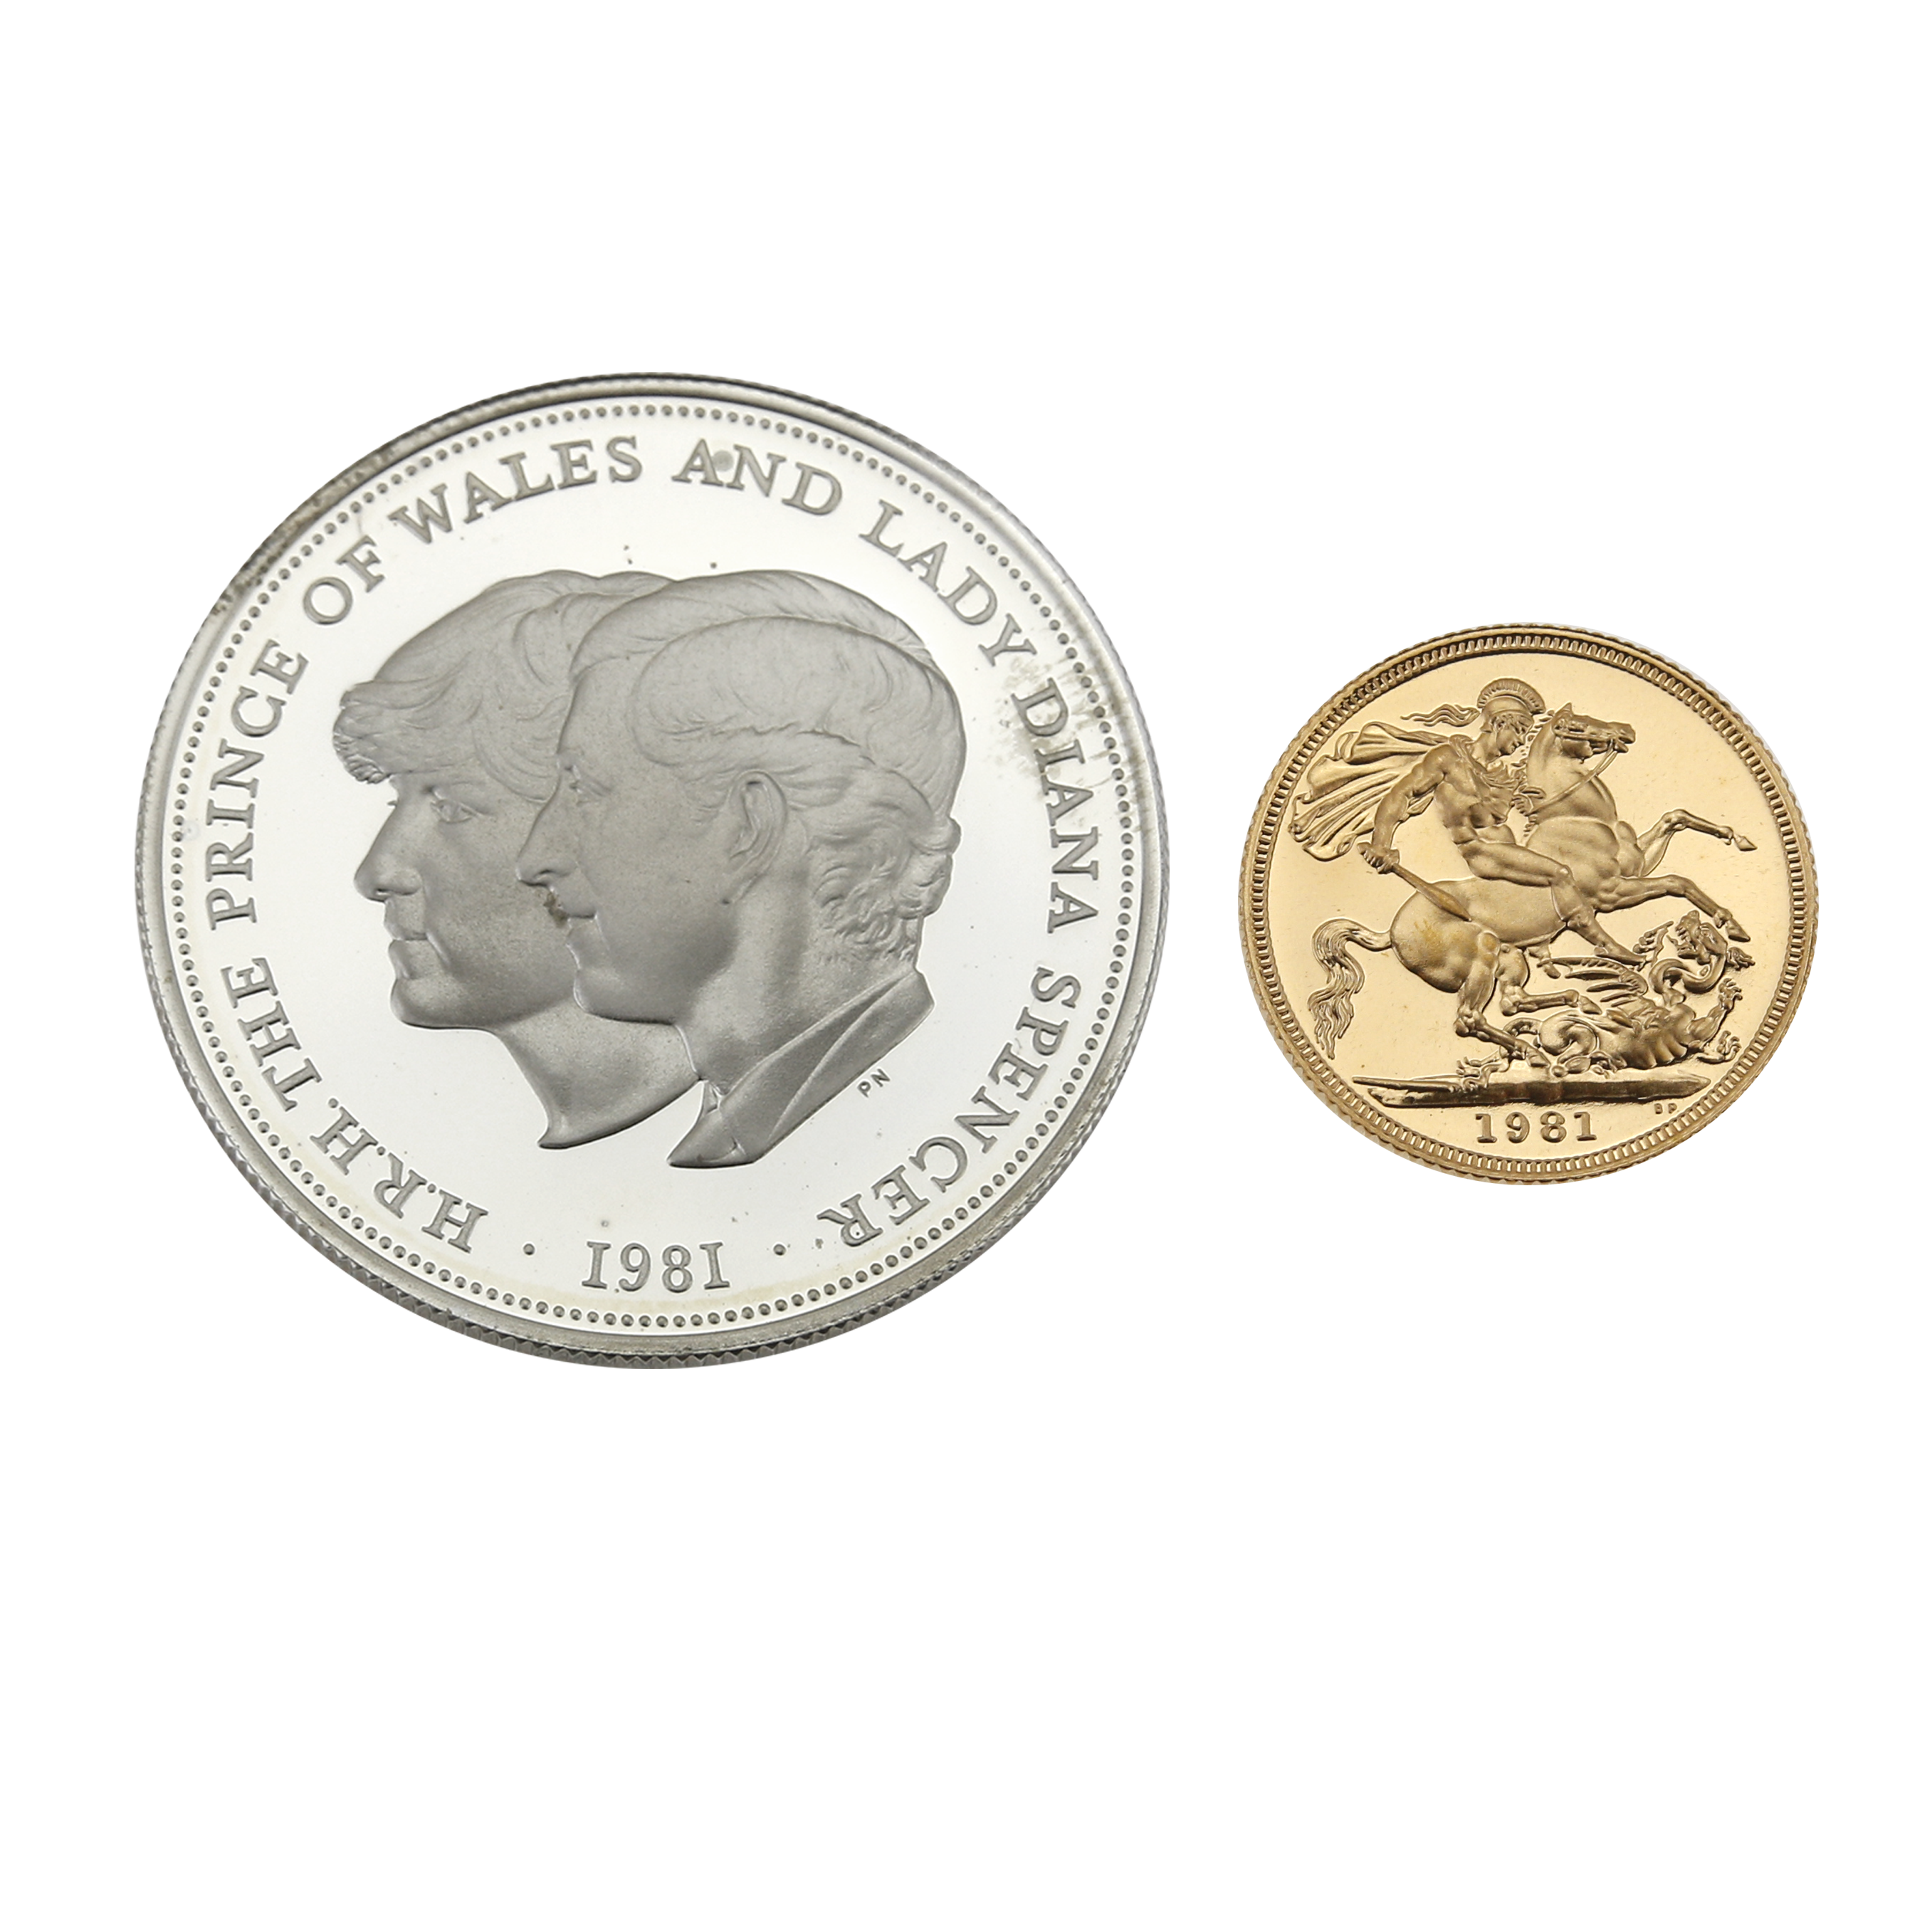 Pre-Owned 1981 UK Royal Marriage Two-Coin Commemorative Gold and Silver Proof Coin Set (Image 2)